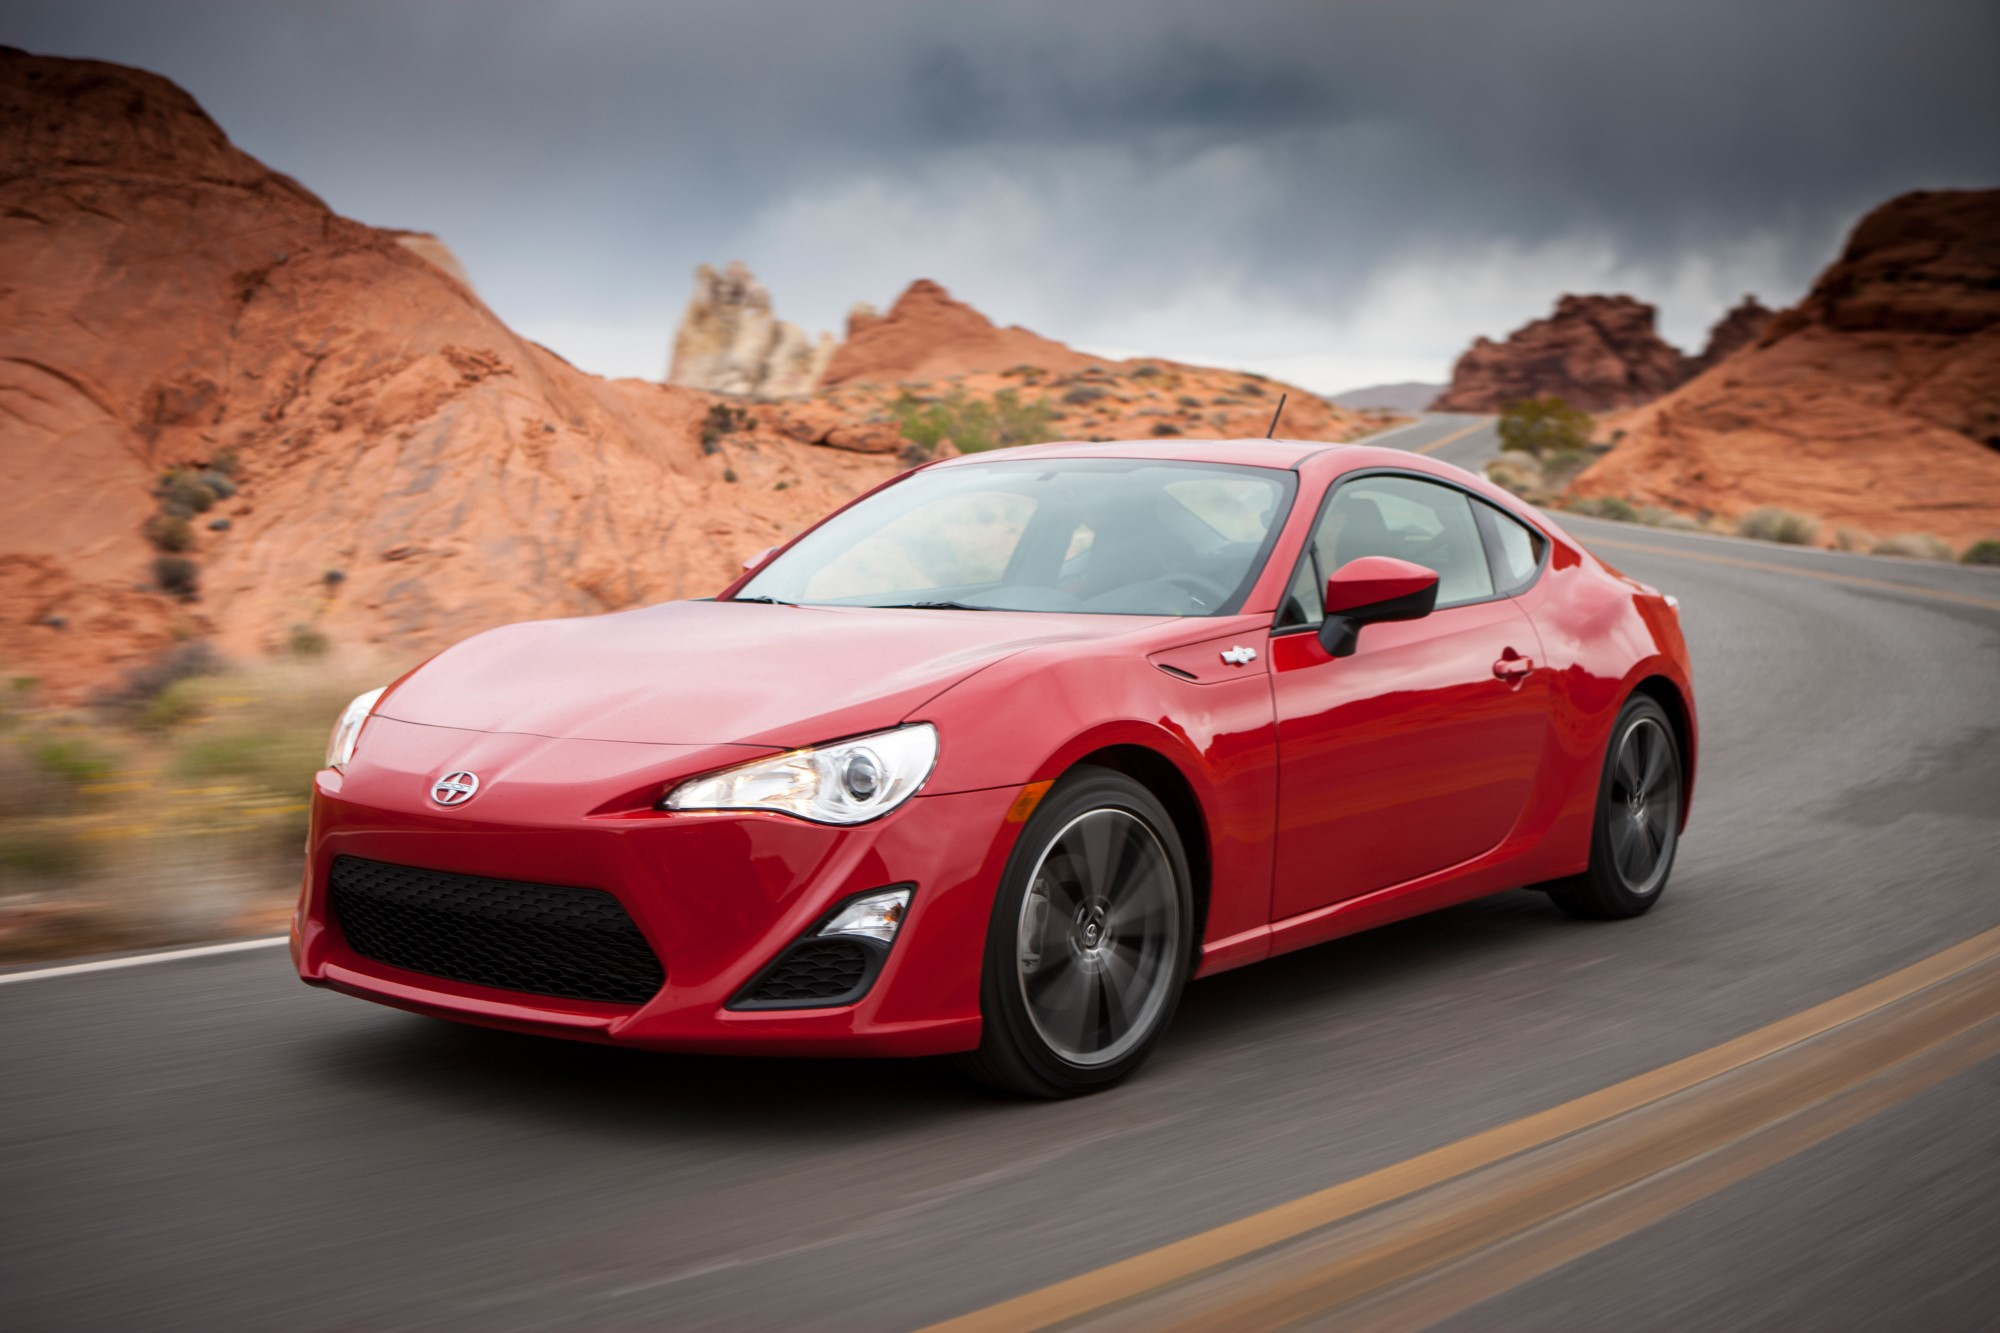 Scion Frs Turbo >> 2014 Scion FR-S Gets New Features, Slight Price Increase